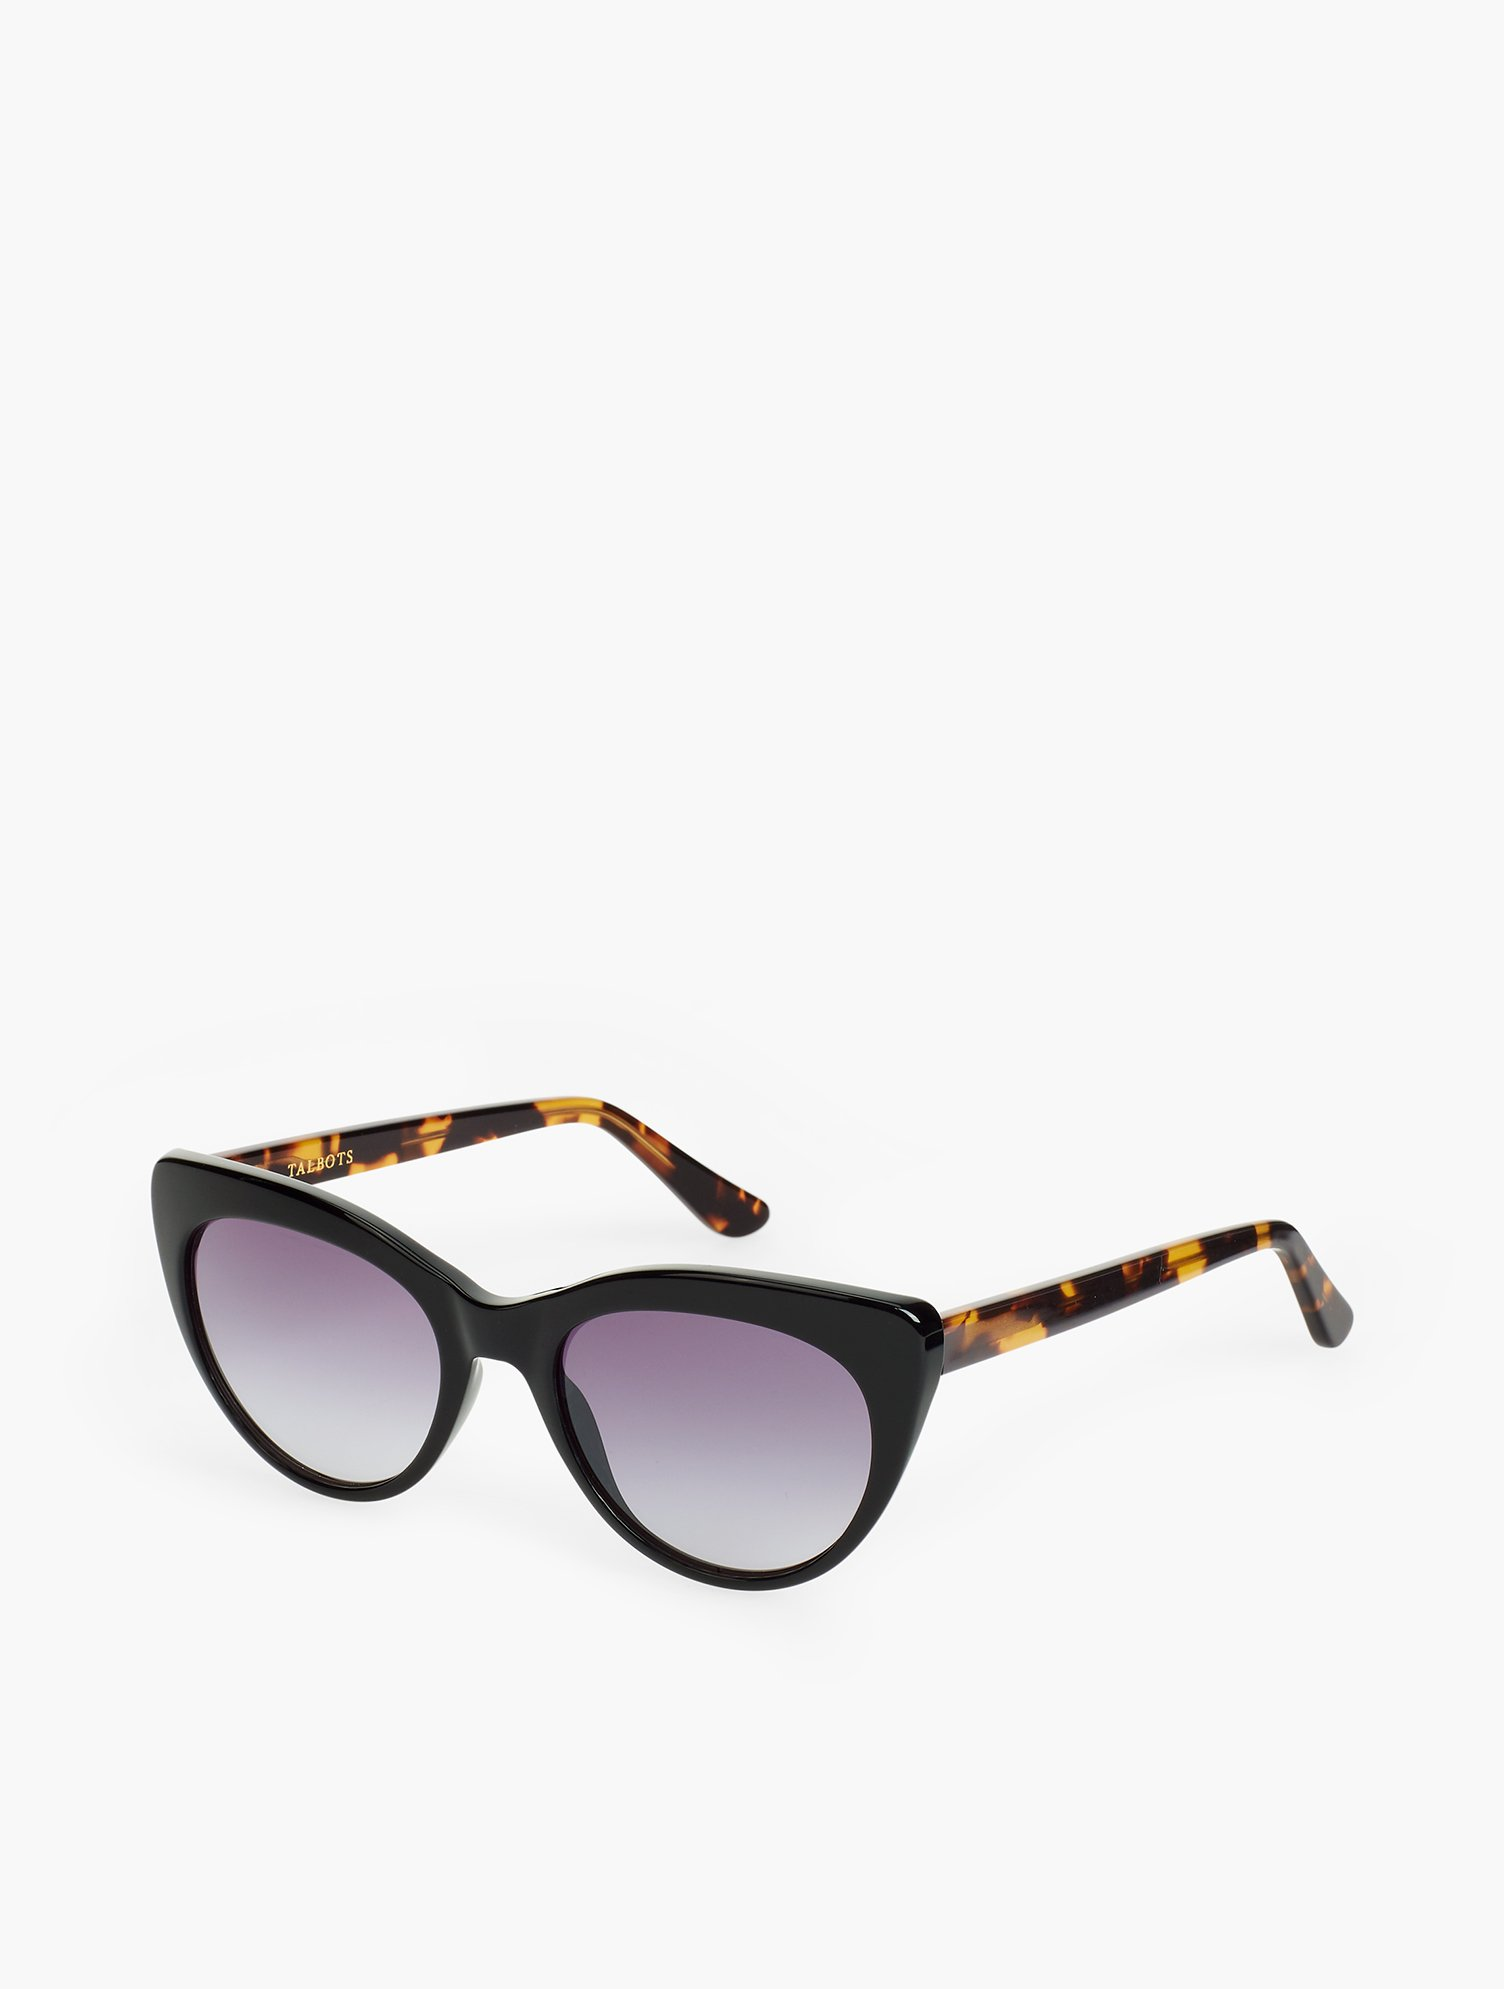 Retro chic is reinvented with cat-eye sunglasses. Features Frame Shape: Cat Eye Microfiber Pouch Imported Material: 100% Plastic Simone Sunglasses - Black/Tortoise - 001 Talbots